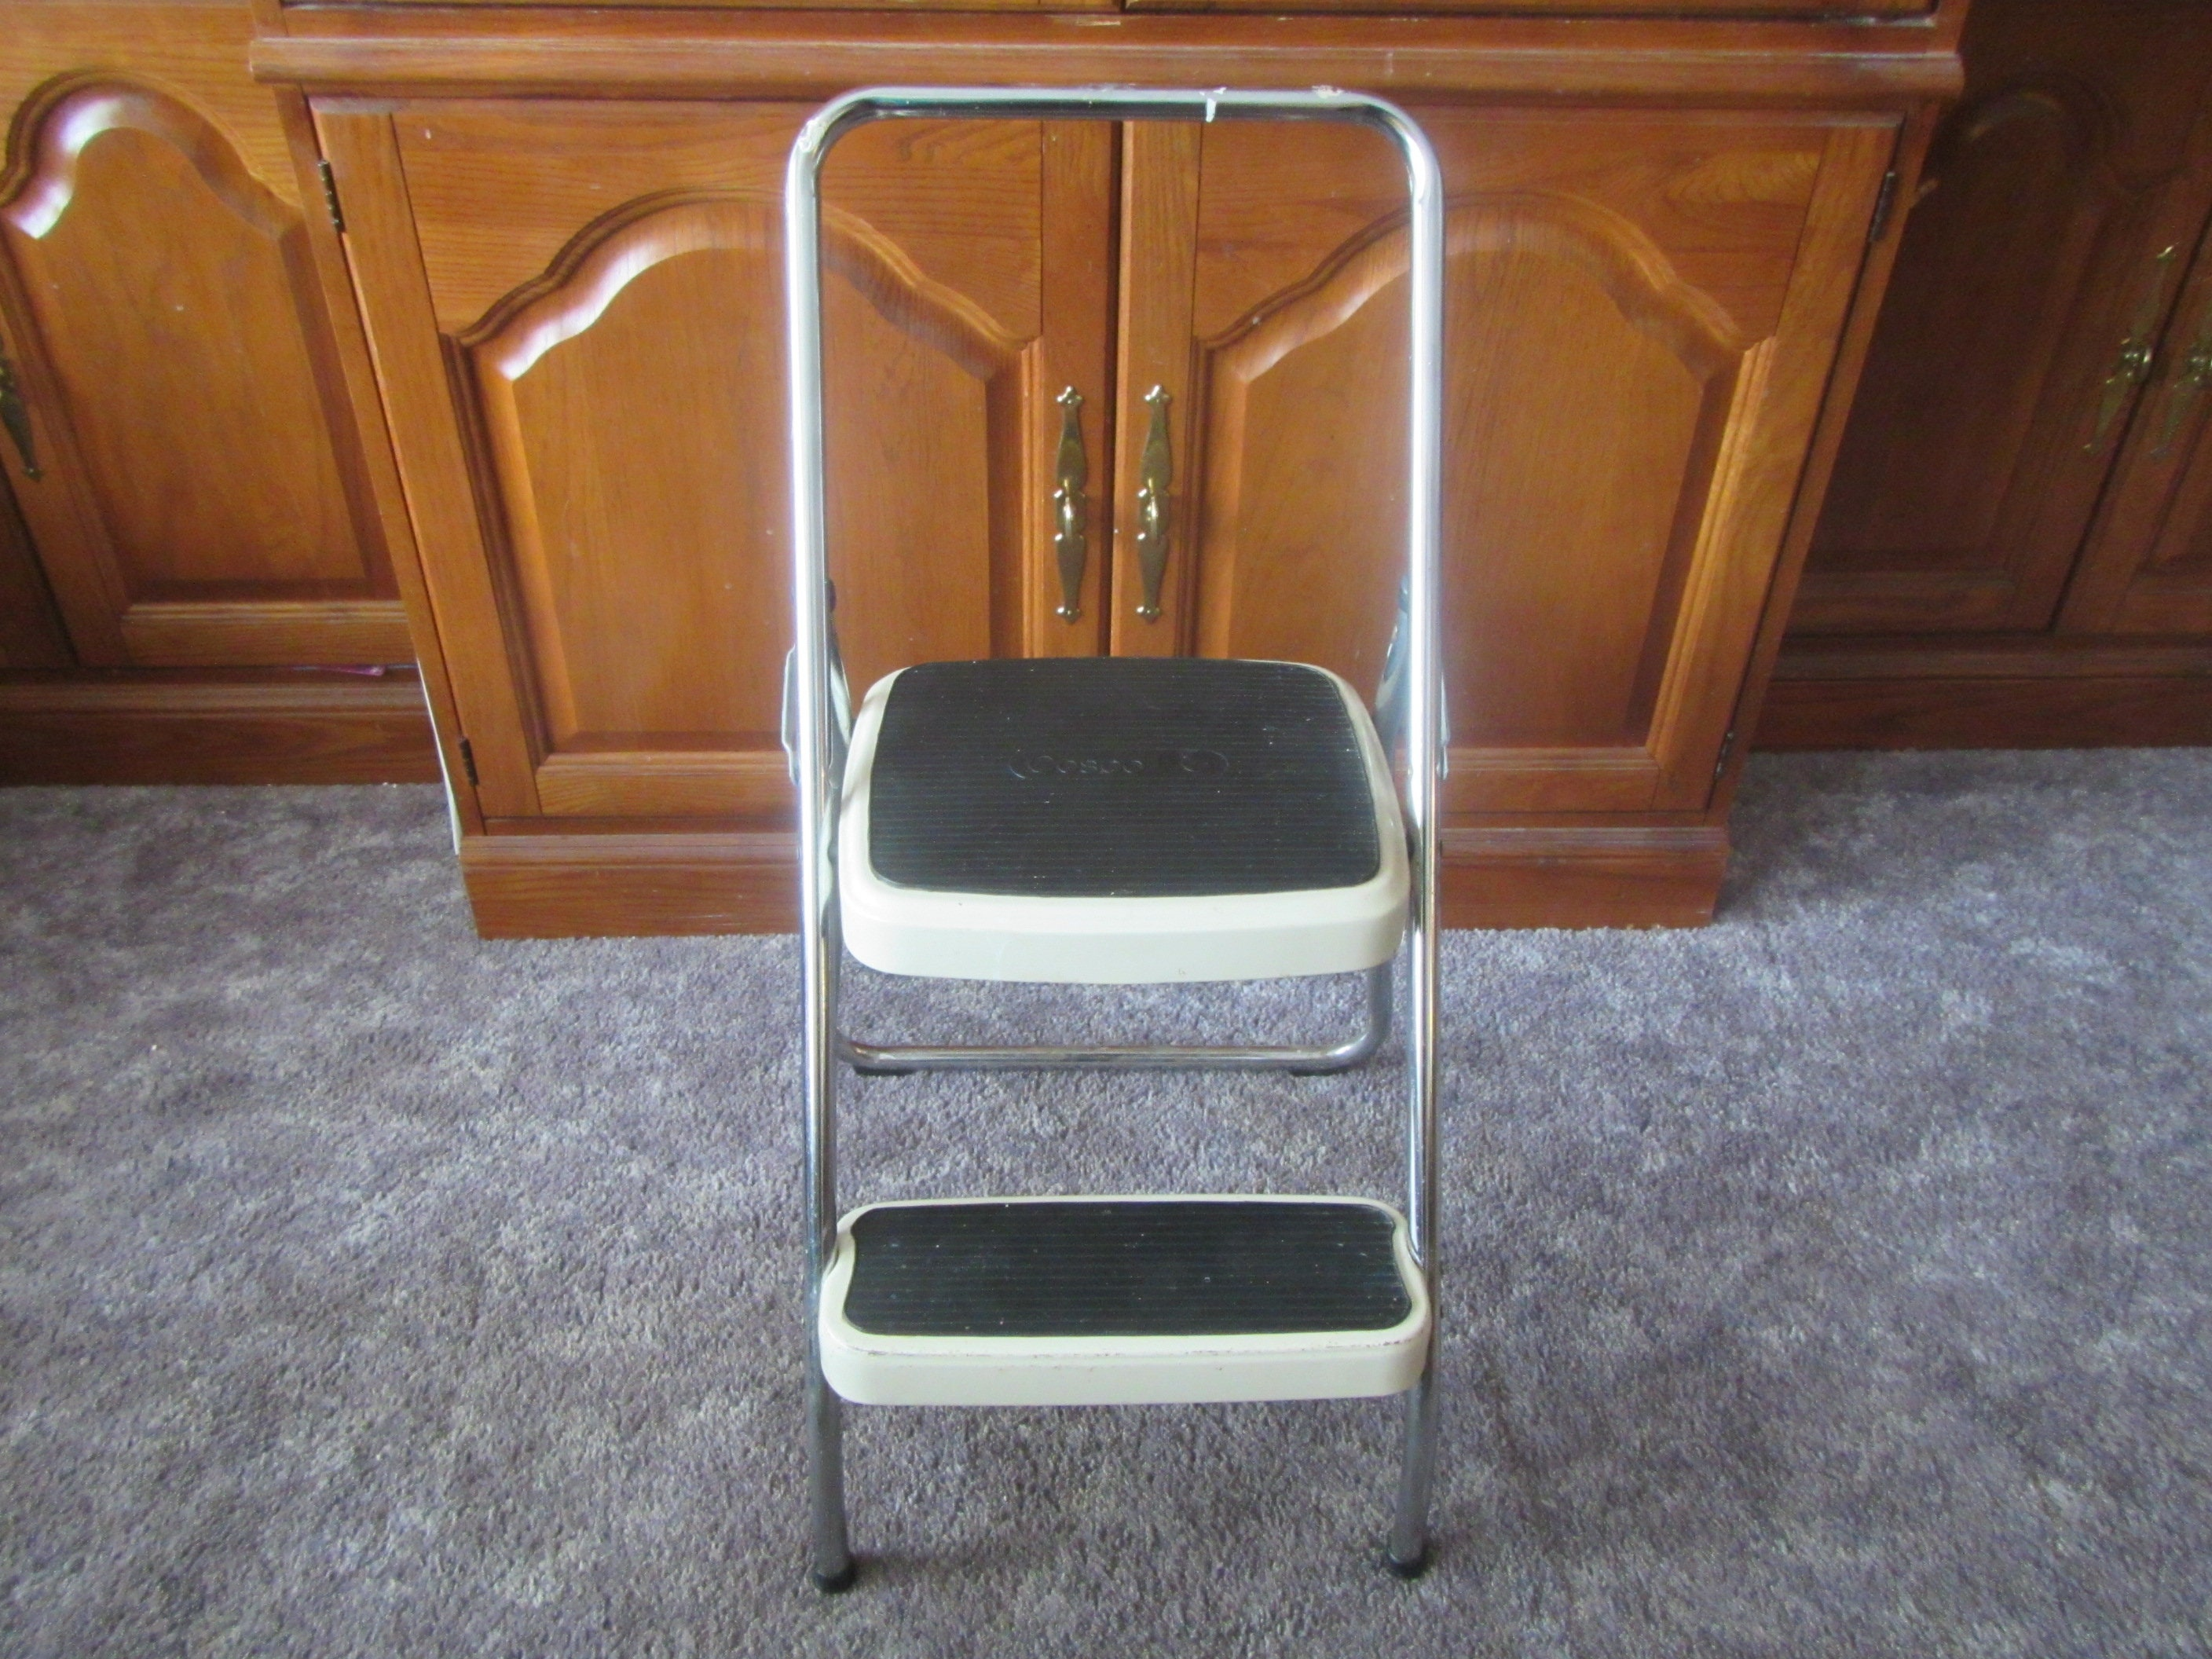 Folding Cosco Kitchen Step Stool Chair , fold in step, metal and Chrome  1960s or 1970s